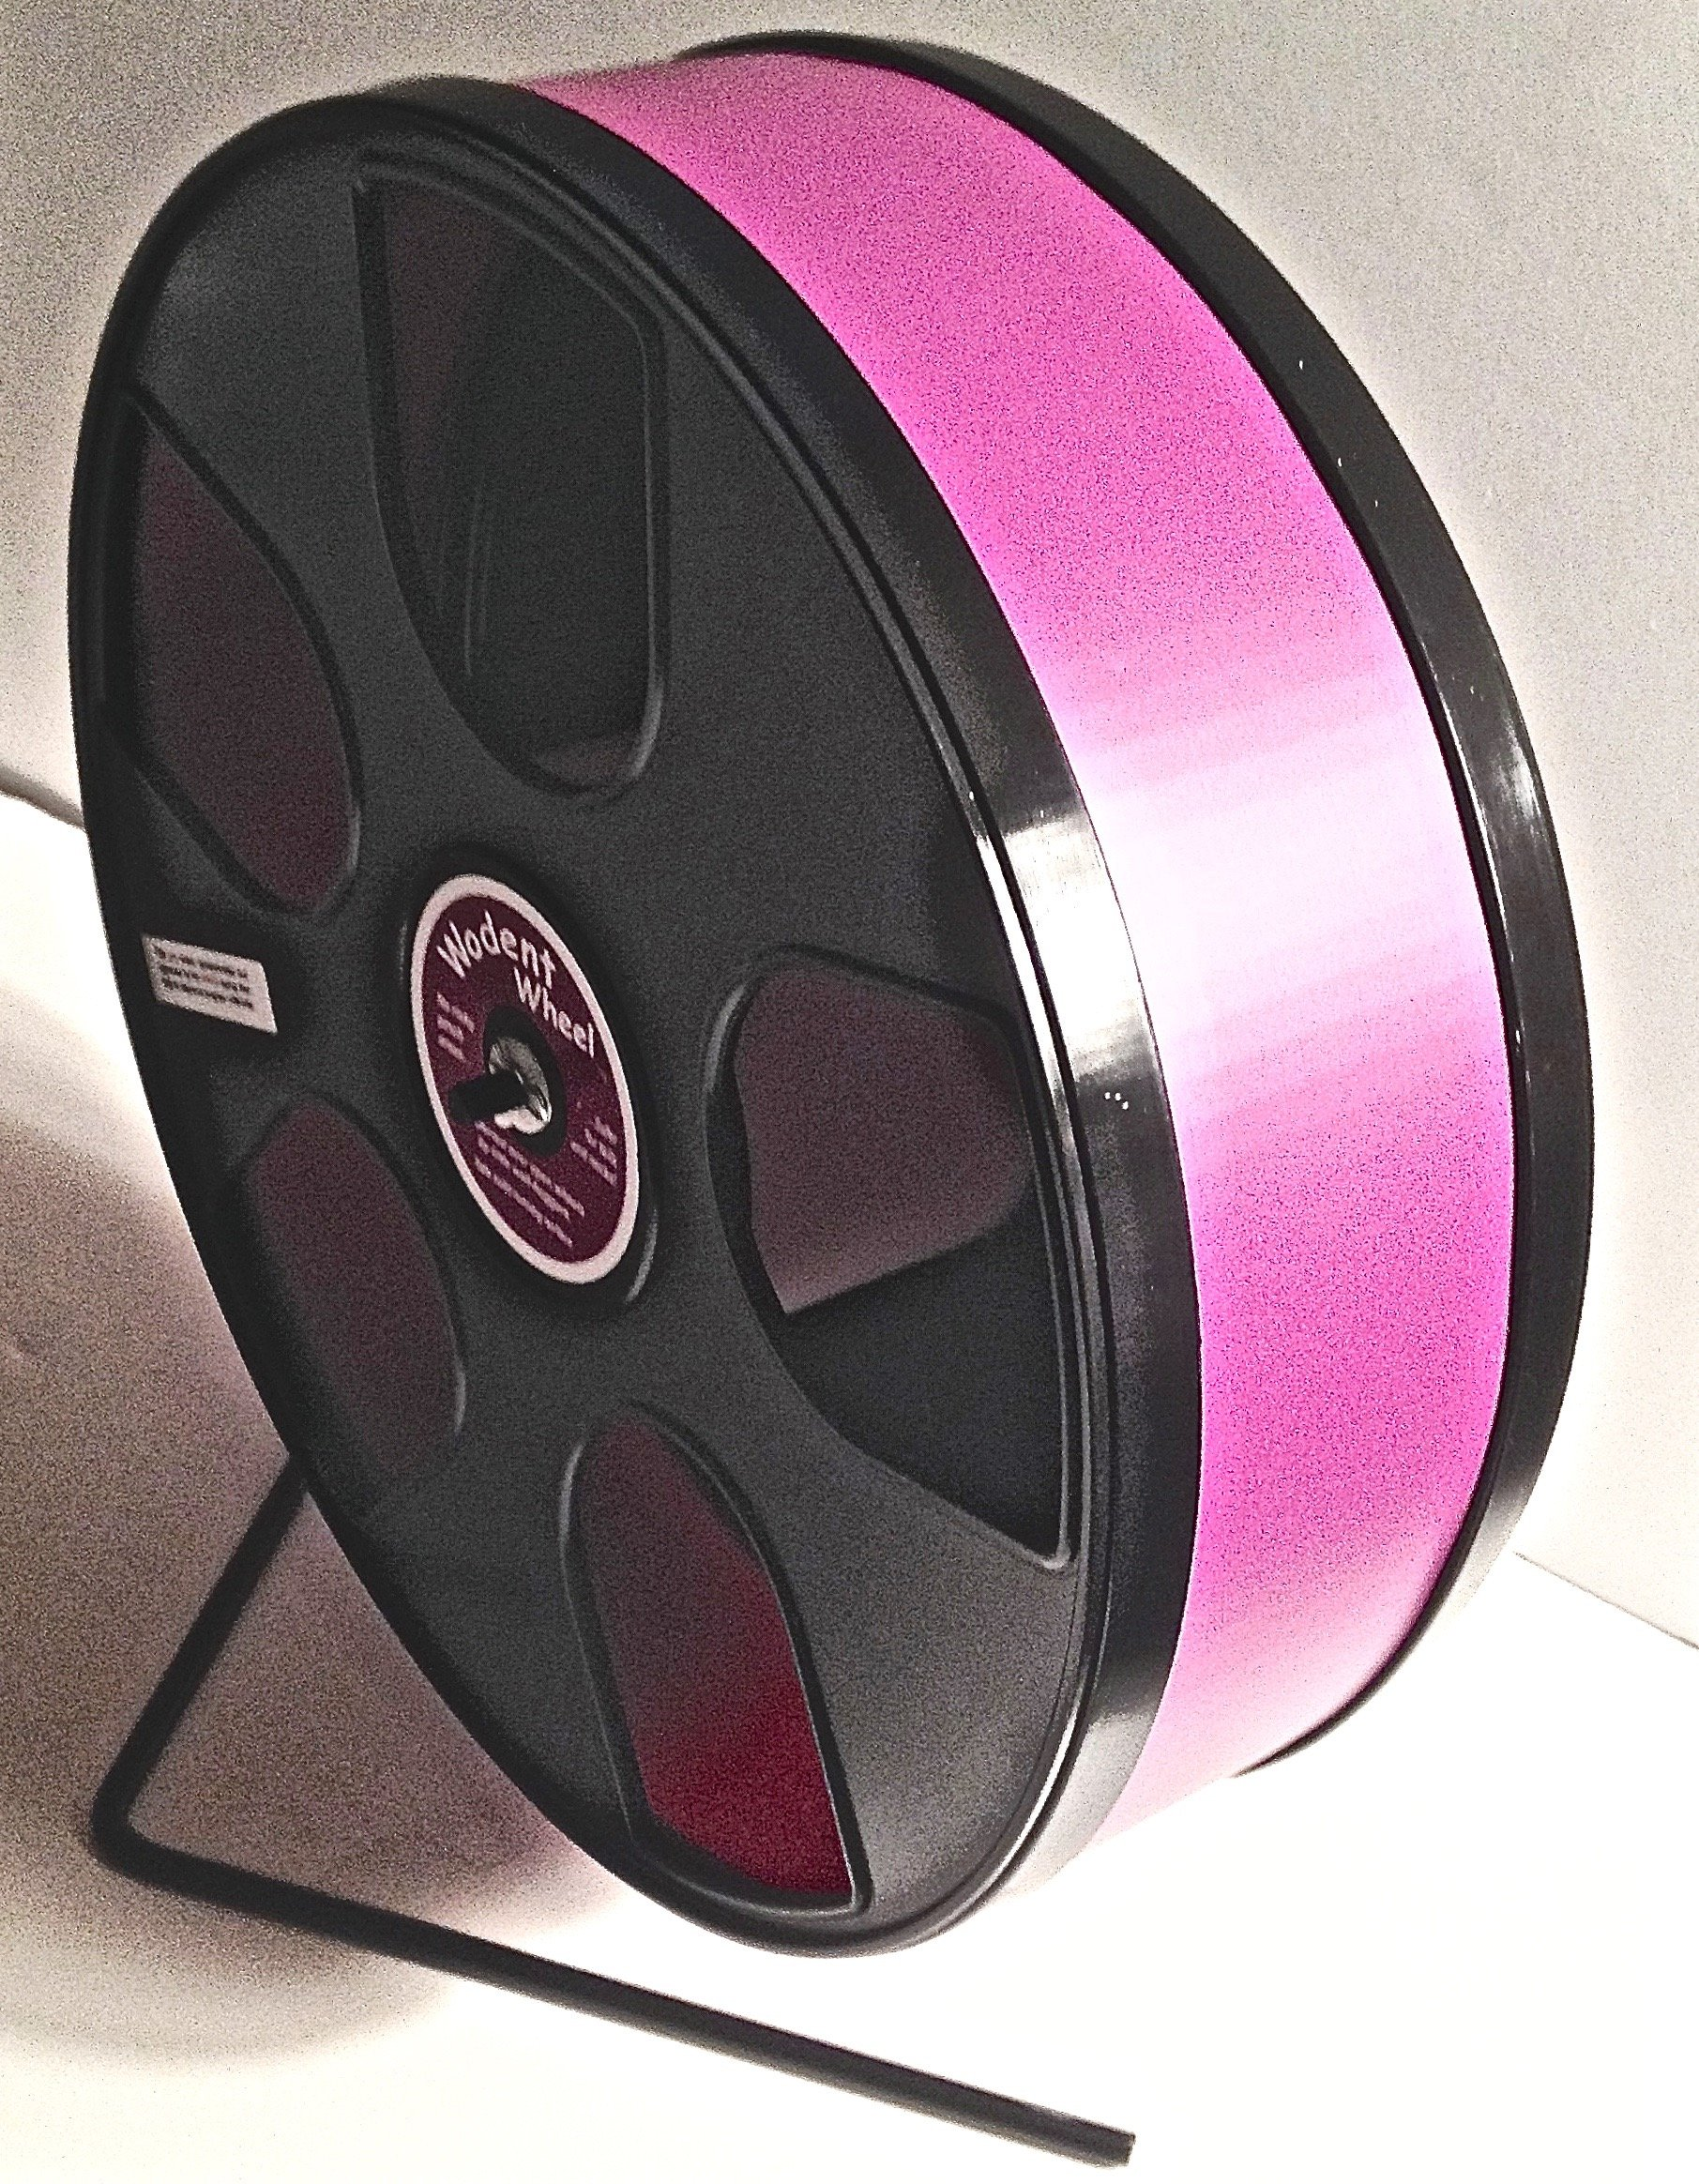 SUGAR GLIDER/SMALL PET 11'' DIAMETER EXERCISE WHEEL- BLACK PANELS WITH BURGUNDY TRACK by Unknown